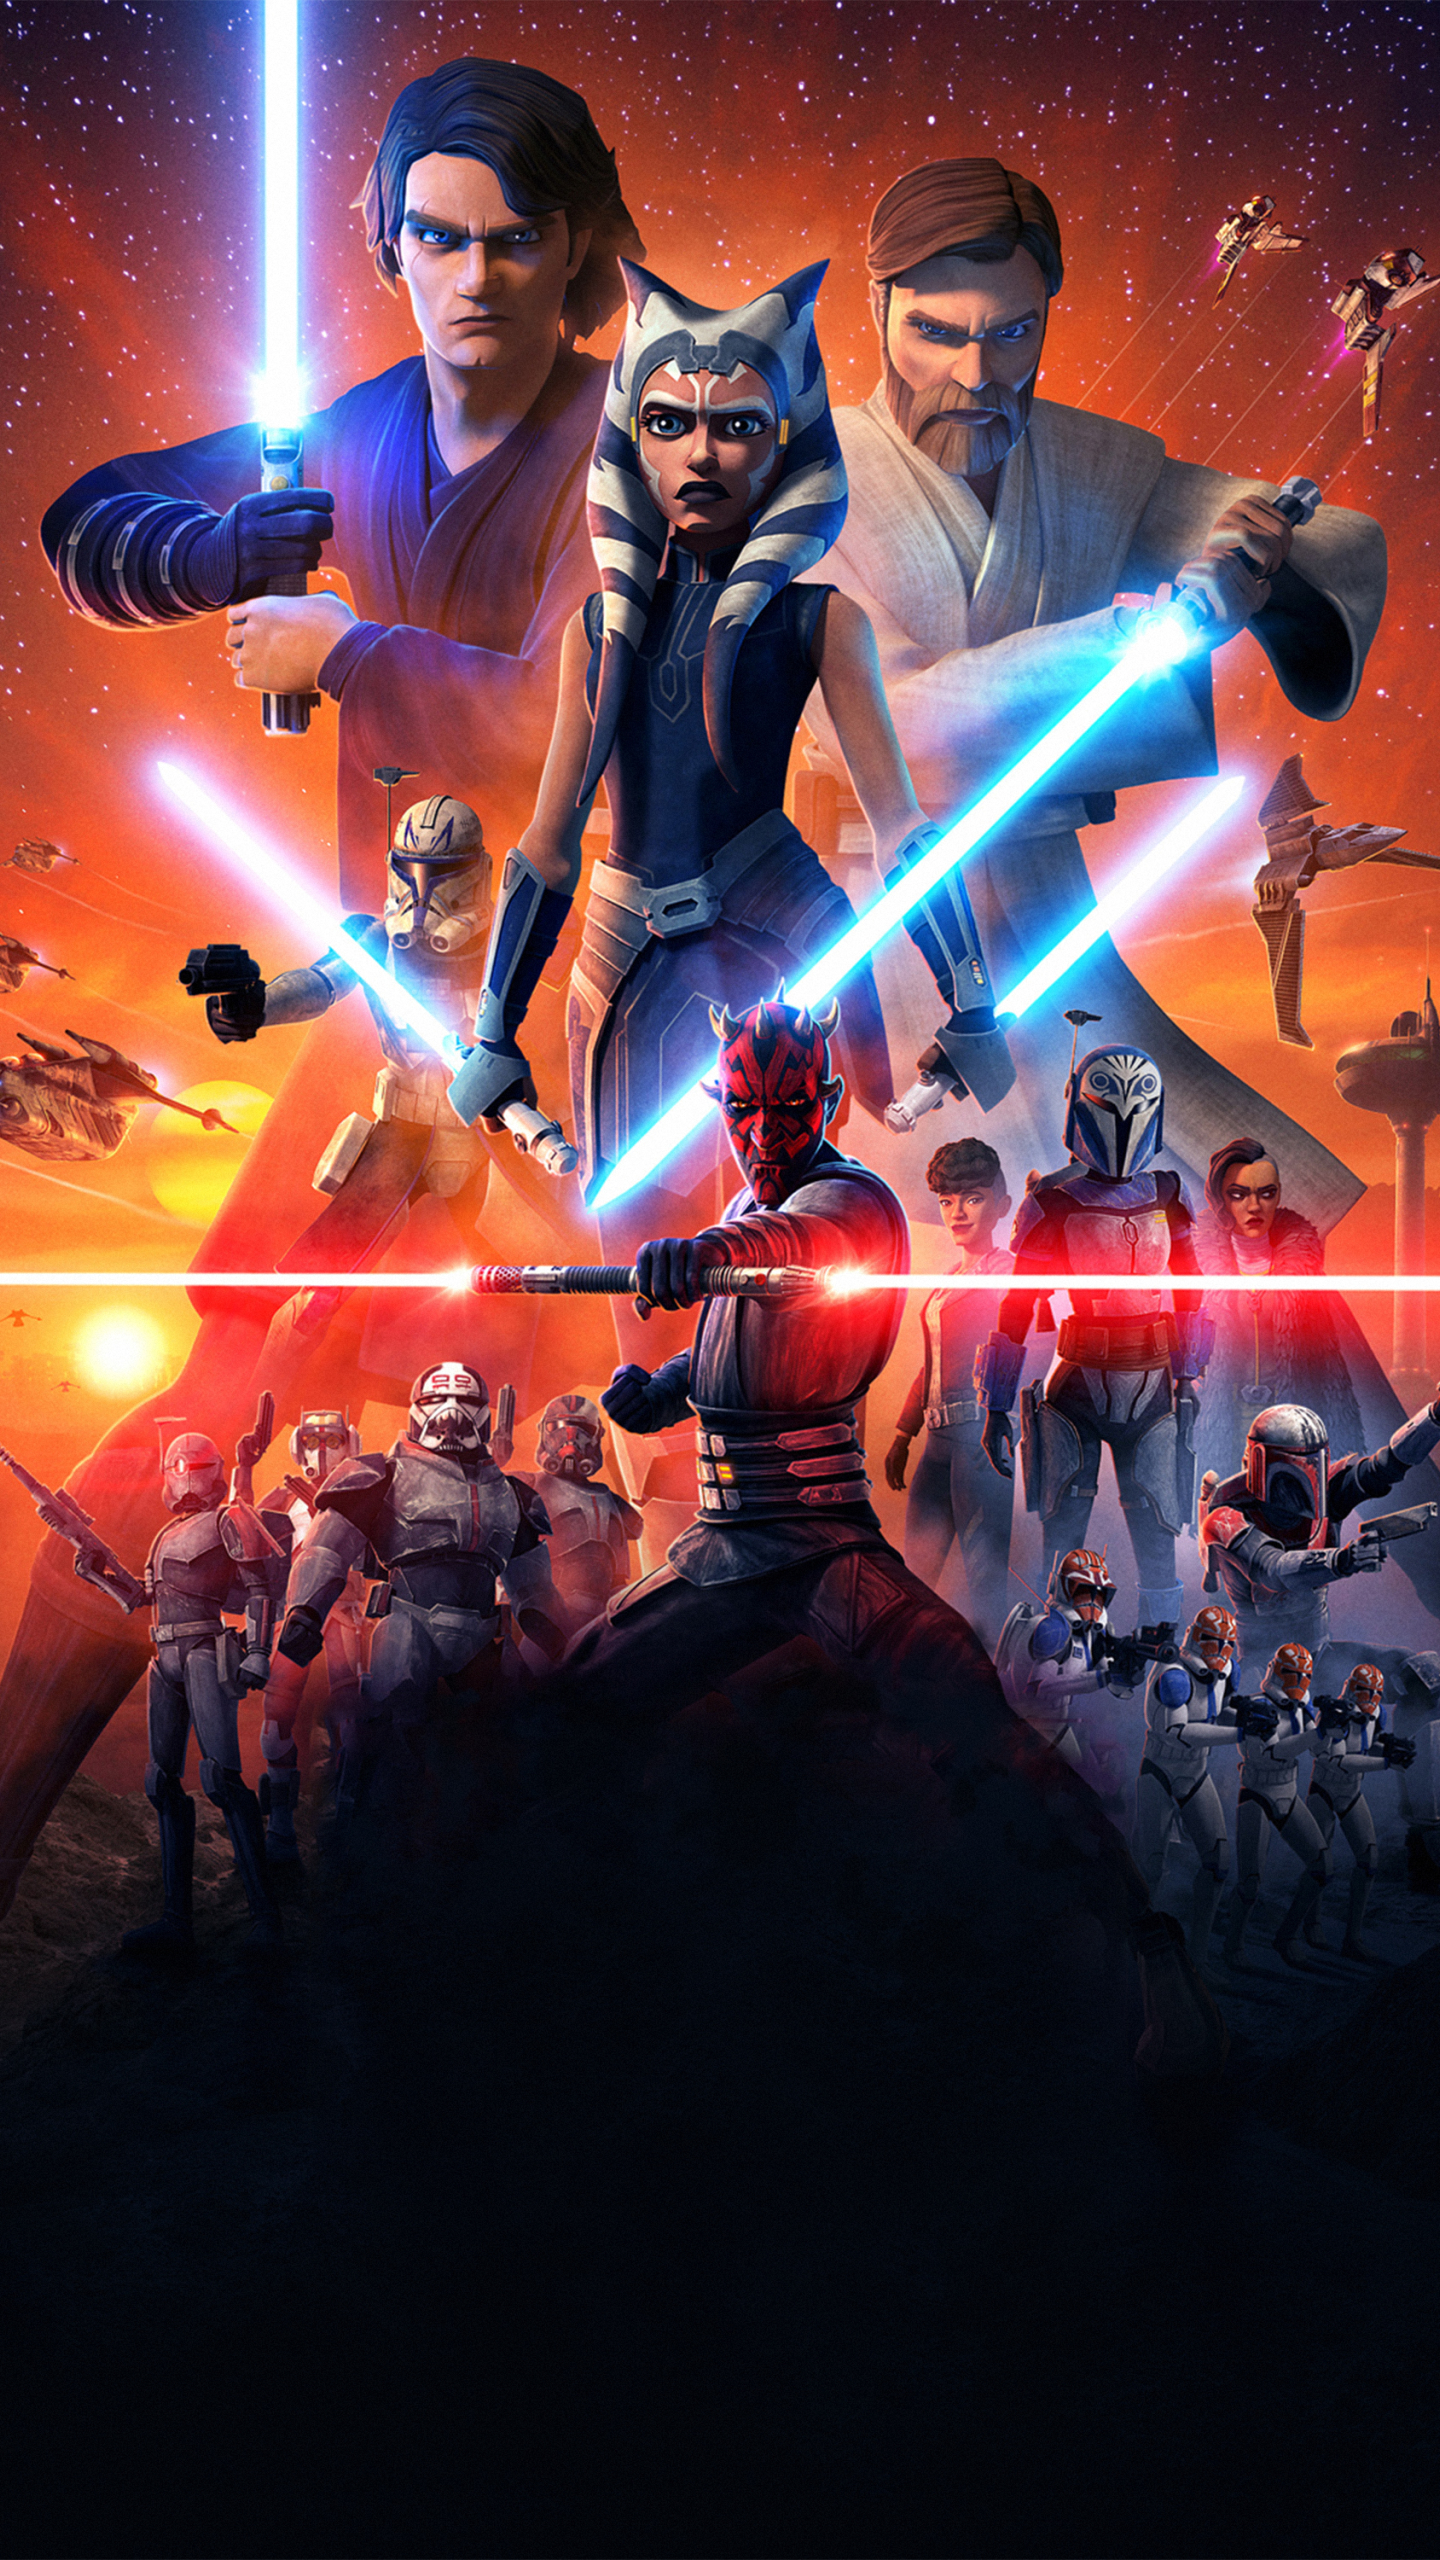 Star Wars The Clone Wars Iphone 2961246 Hd Wallpaper Backgrounds Download